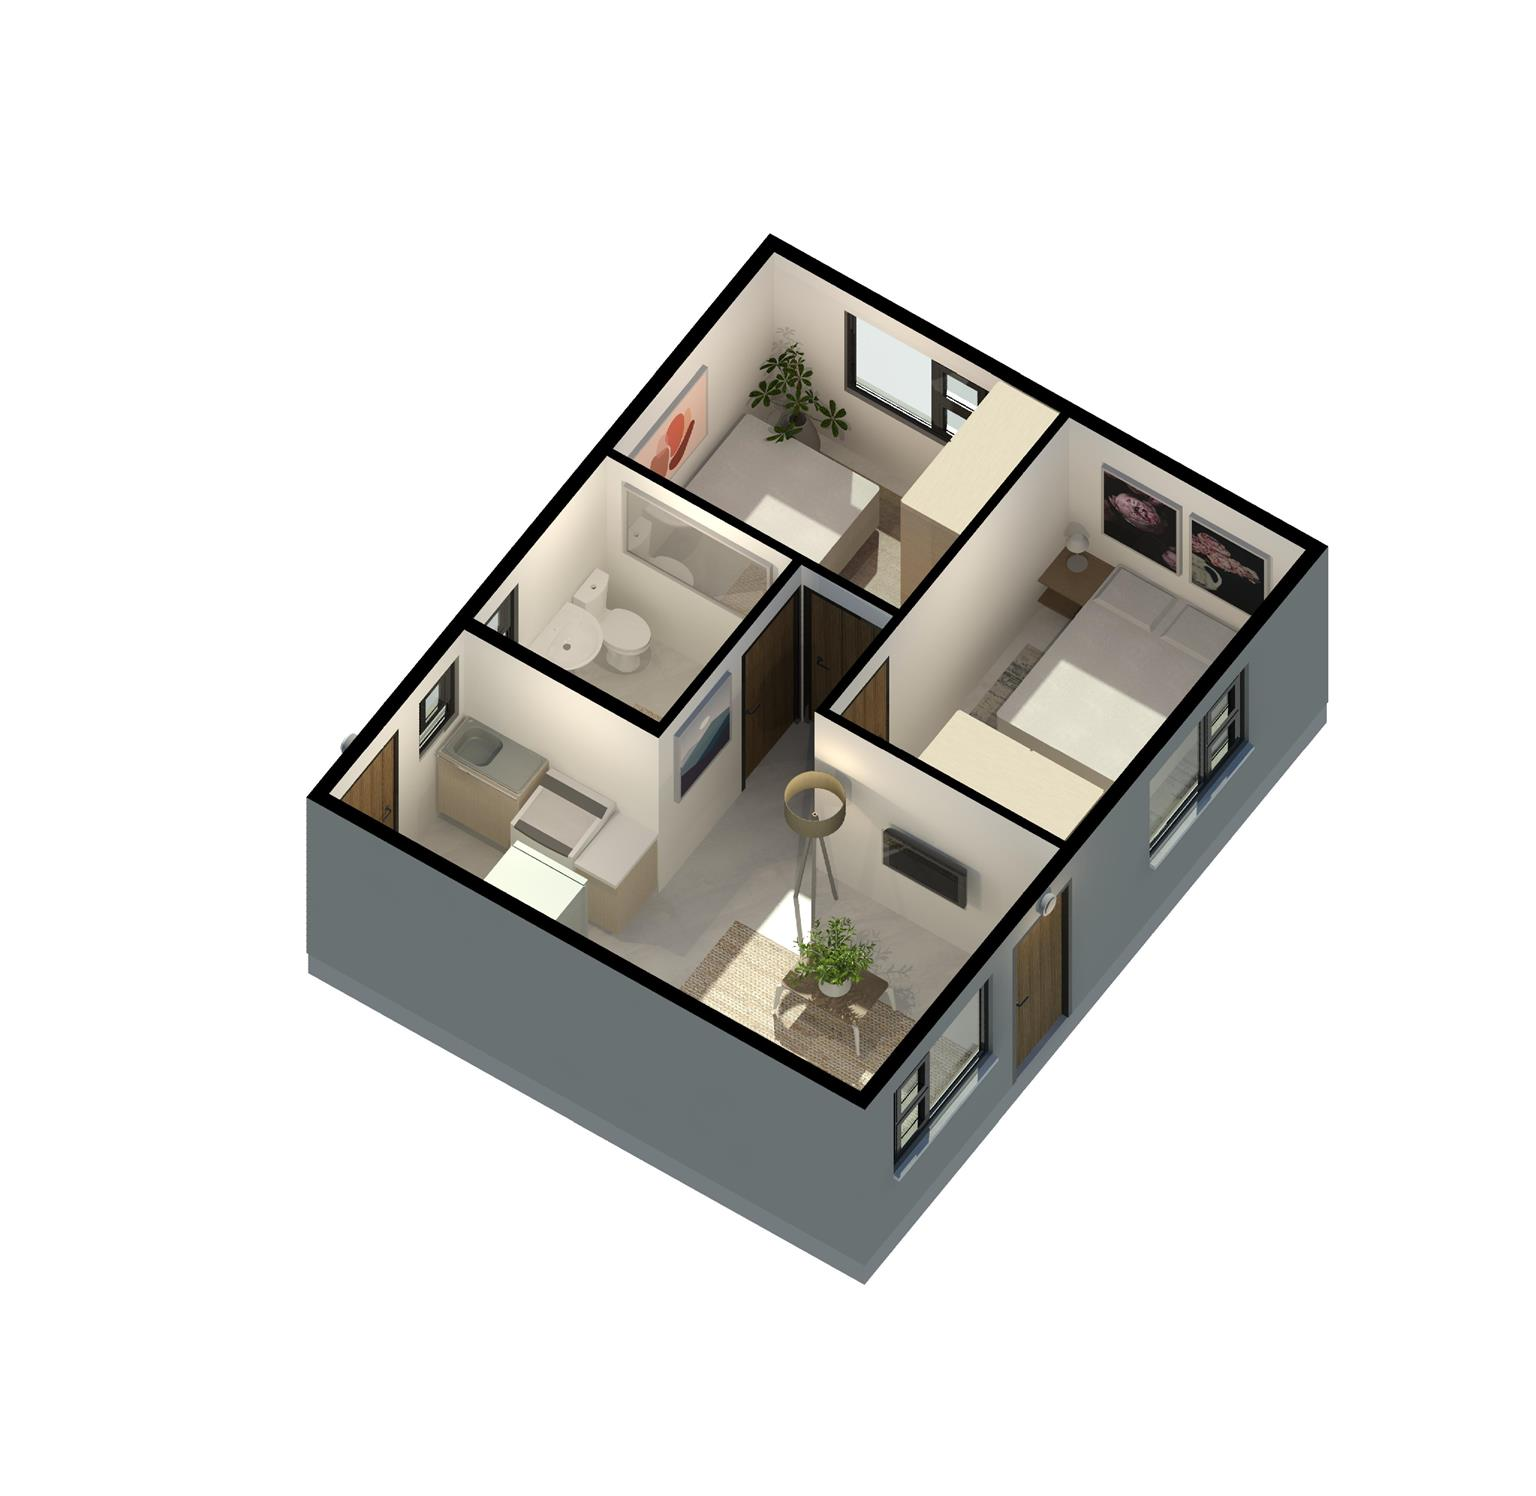 Toekomsrus Ext 5 Phase 1 - NOW SELLING!